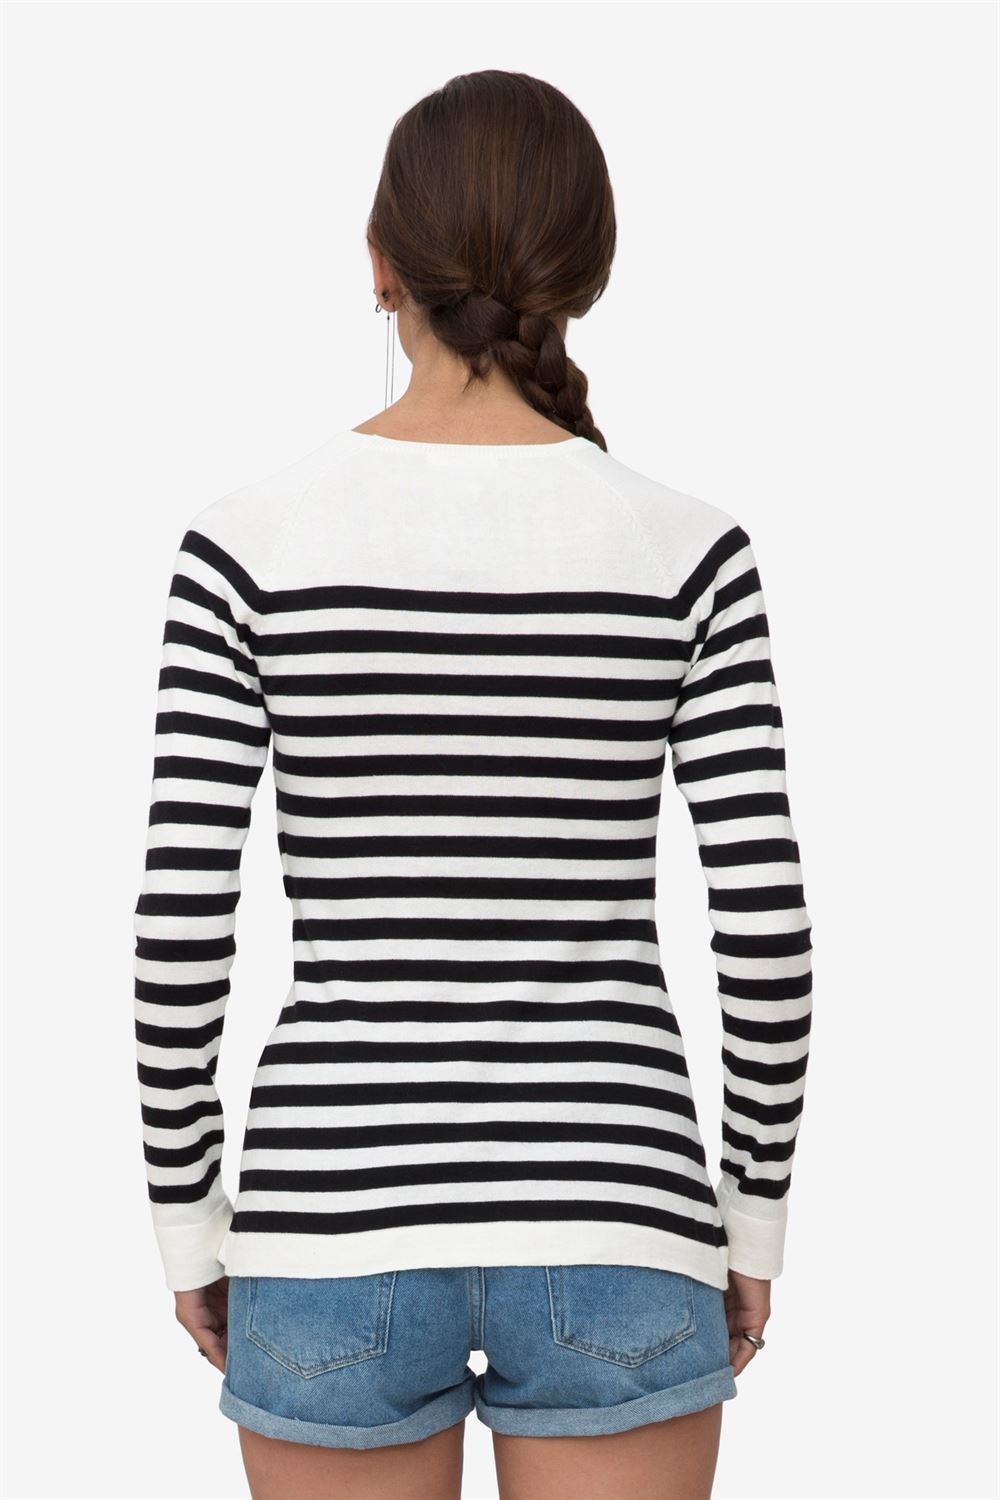 Black/white striped nursing shirt made in organic cotton knit - a shot from the back